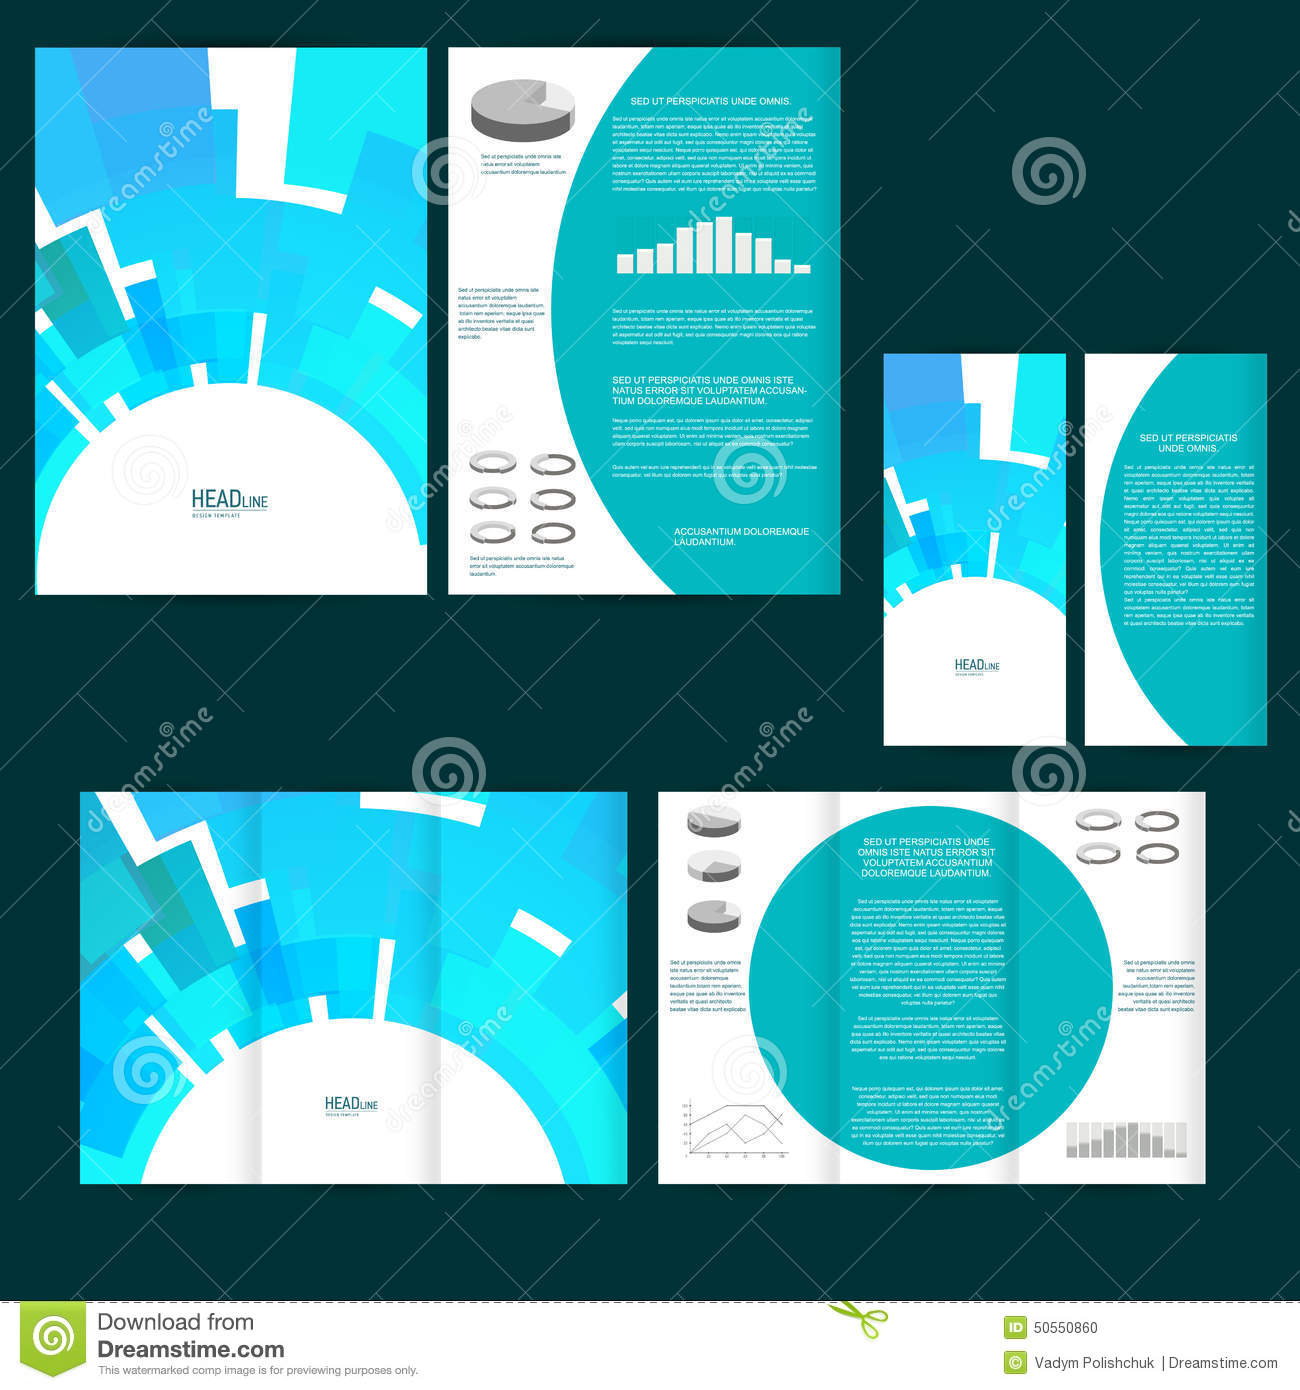 Poster design business - Advertising Brochure Business Corporate Design Flyer Identity Other Poster